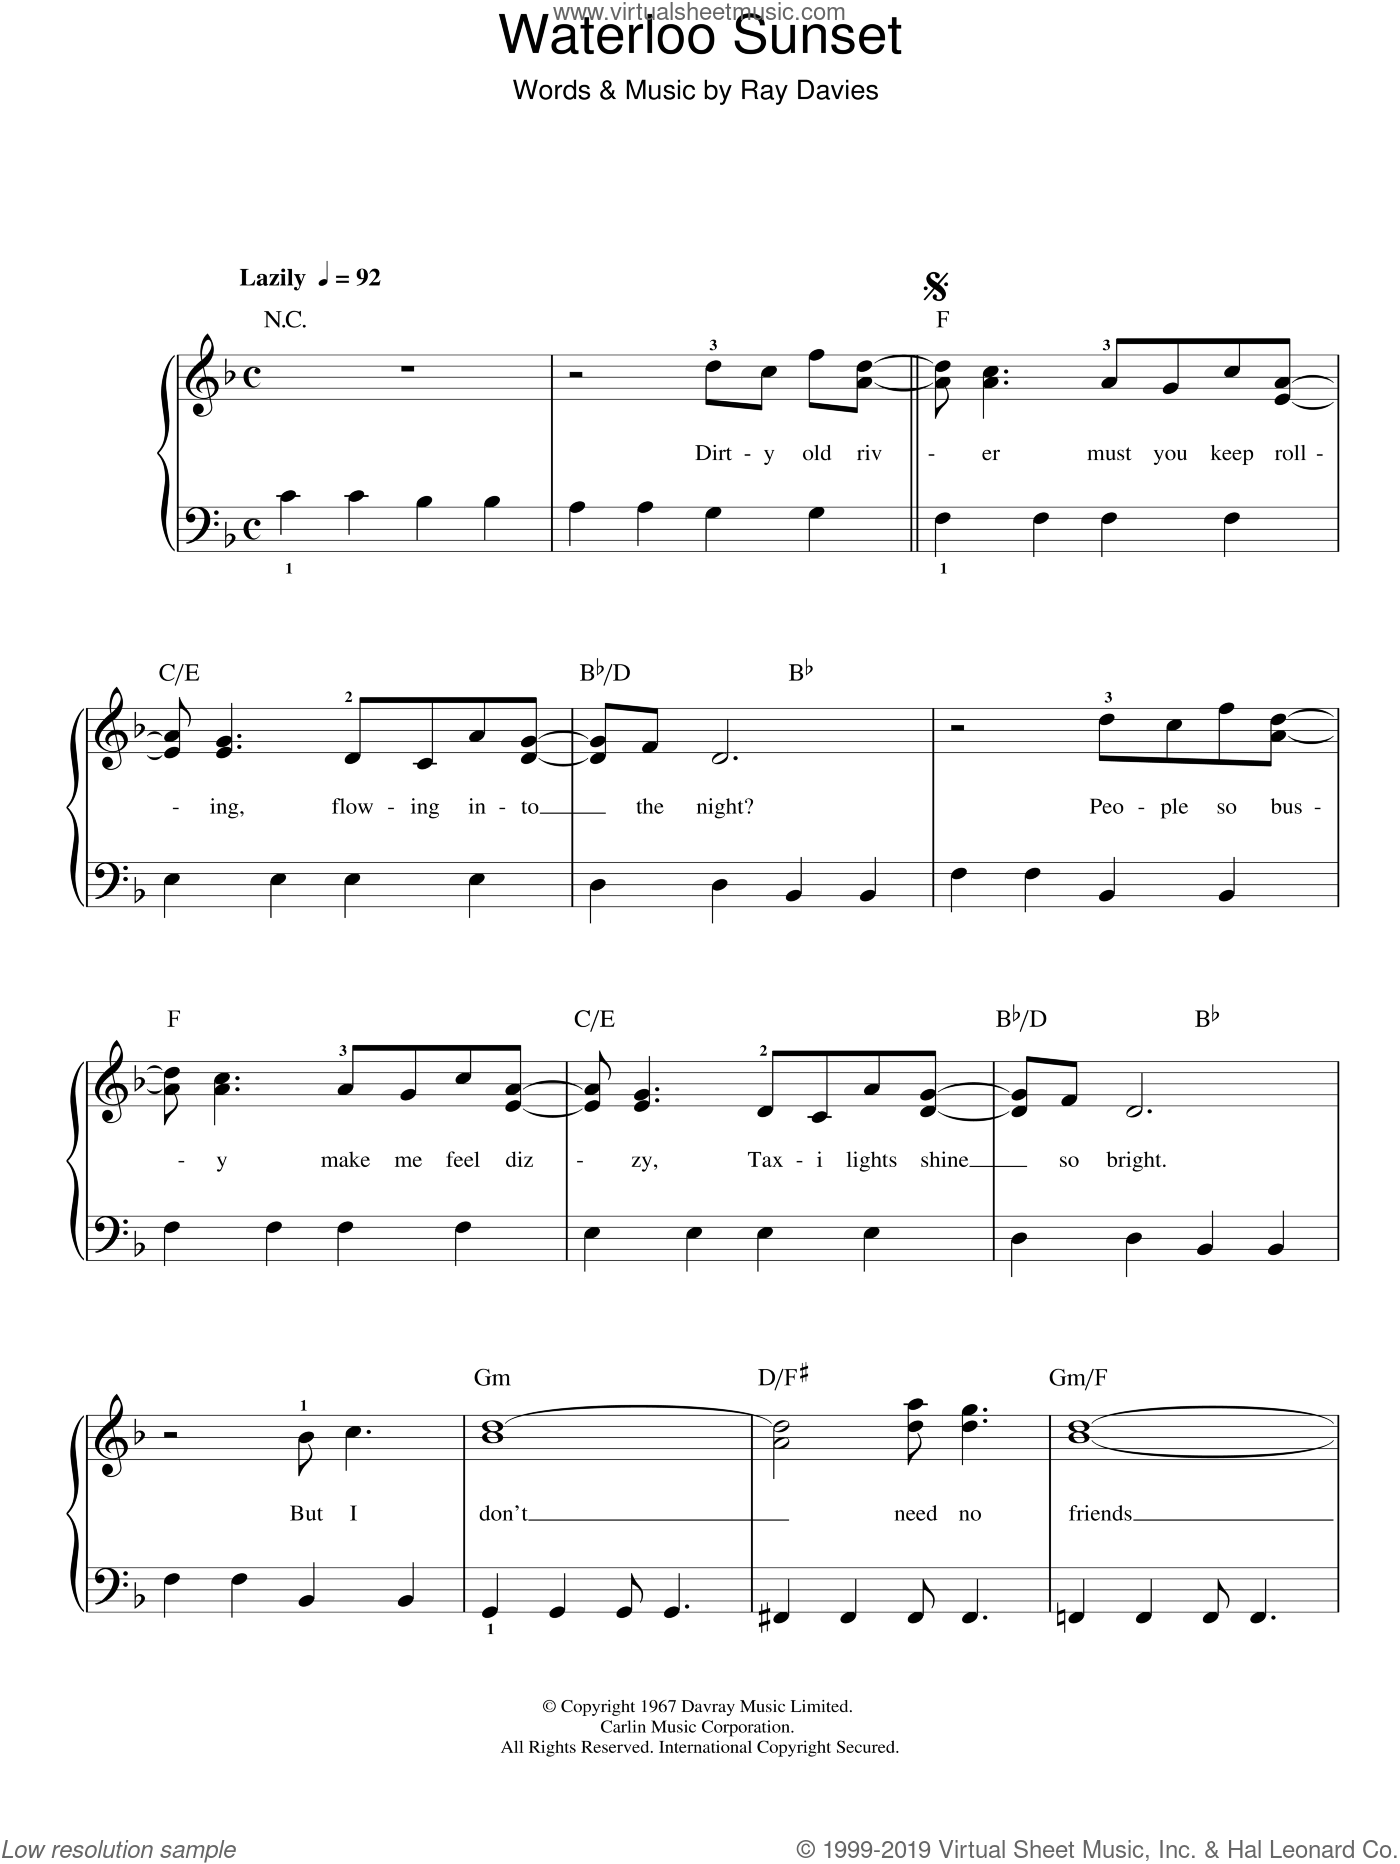 Waterloo Sunset sheet music for piano solo by Ray Davies, easy skill level